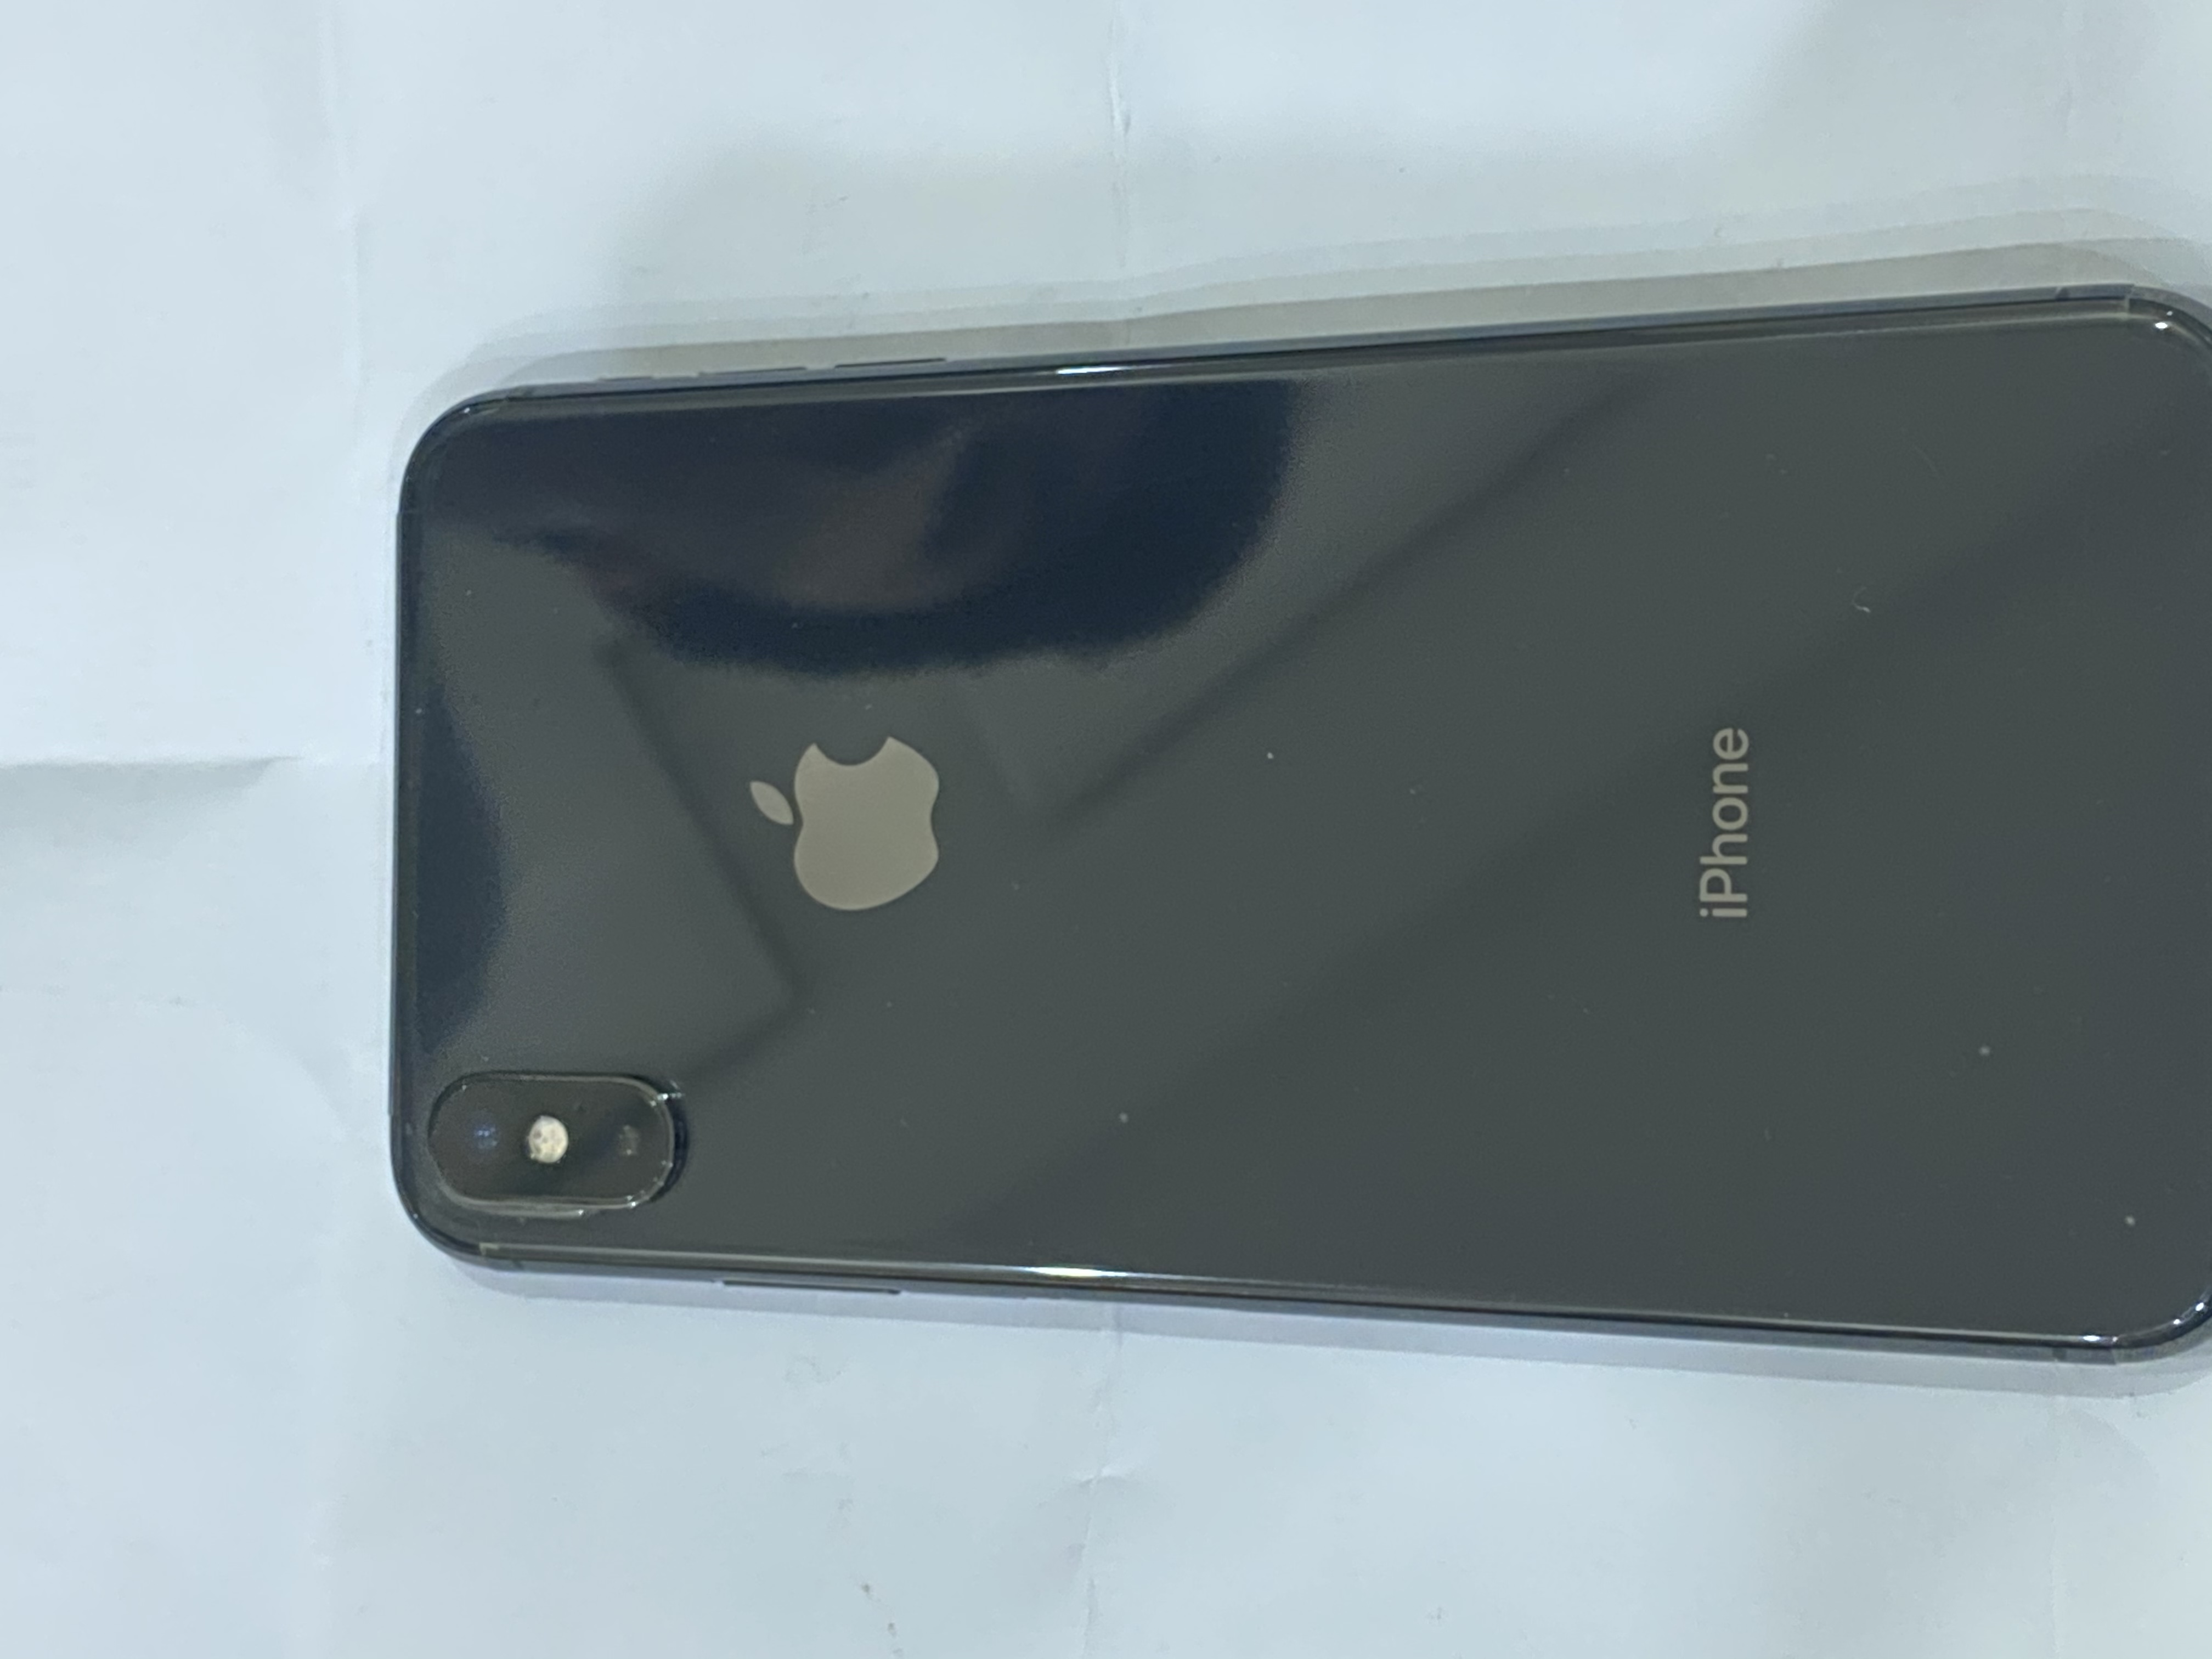 Xs max 256gb pta approved USA model all accessories 90 percent health - photo 4